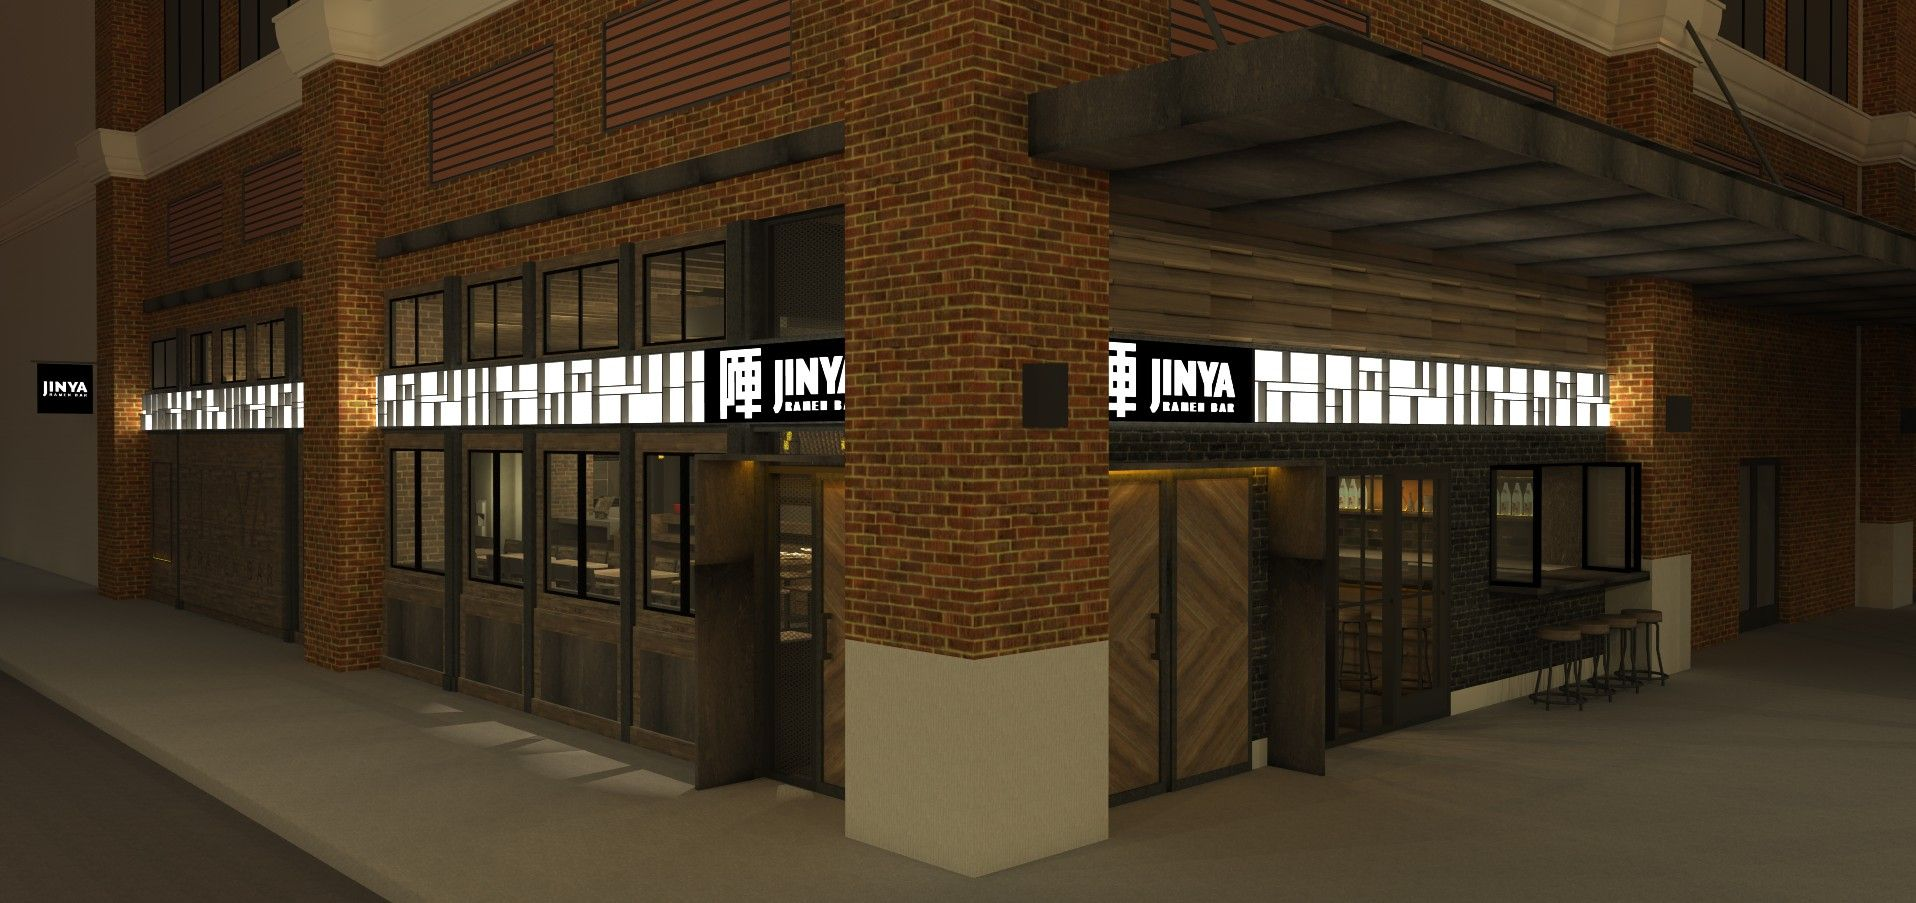 JINYA Ramen Bar's Expansion in the DC Metropolitan Area Continues